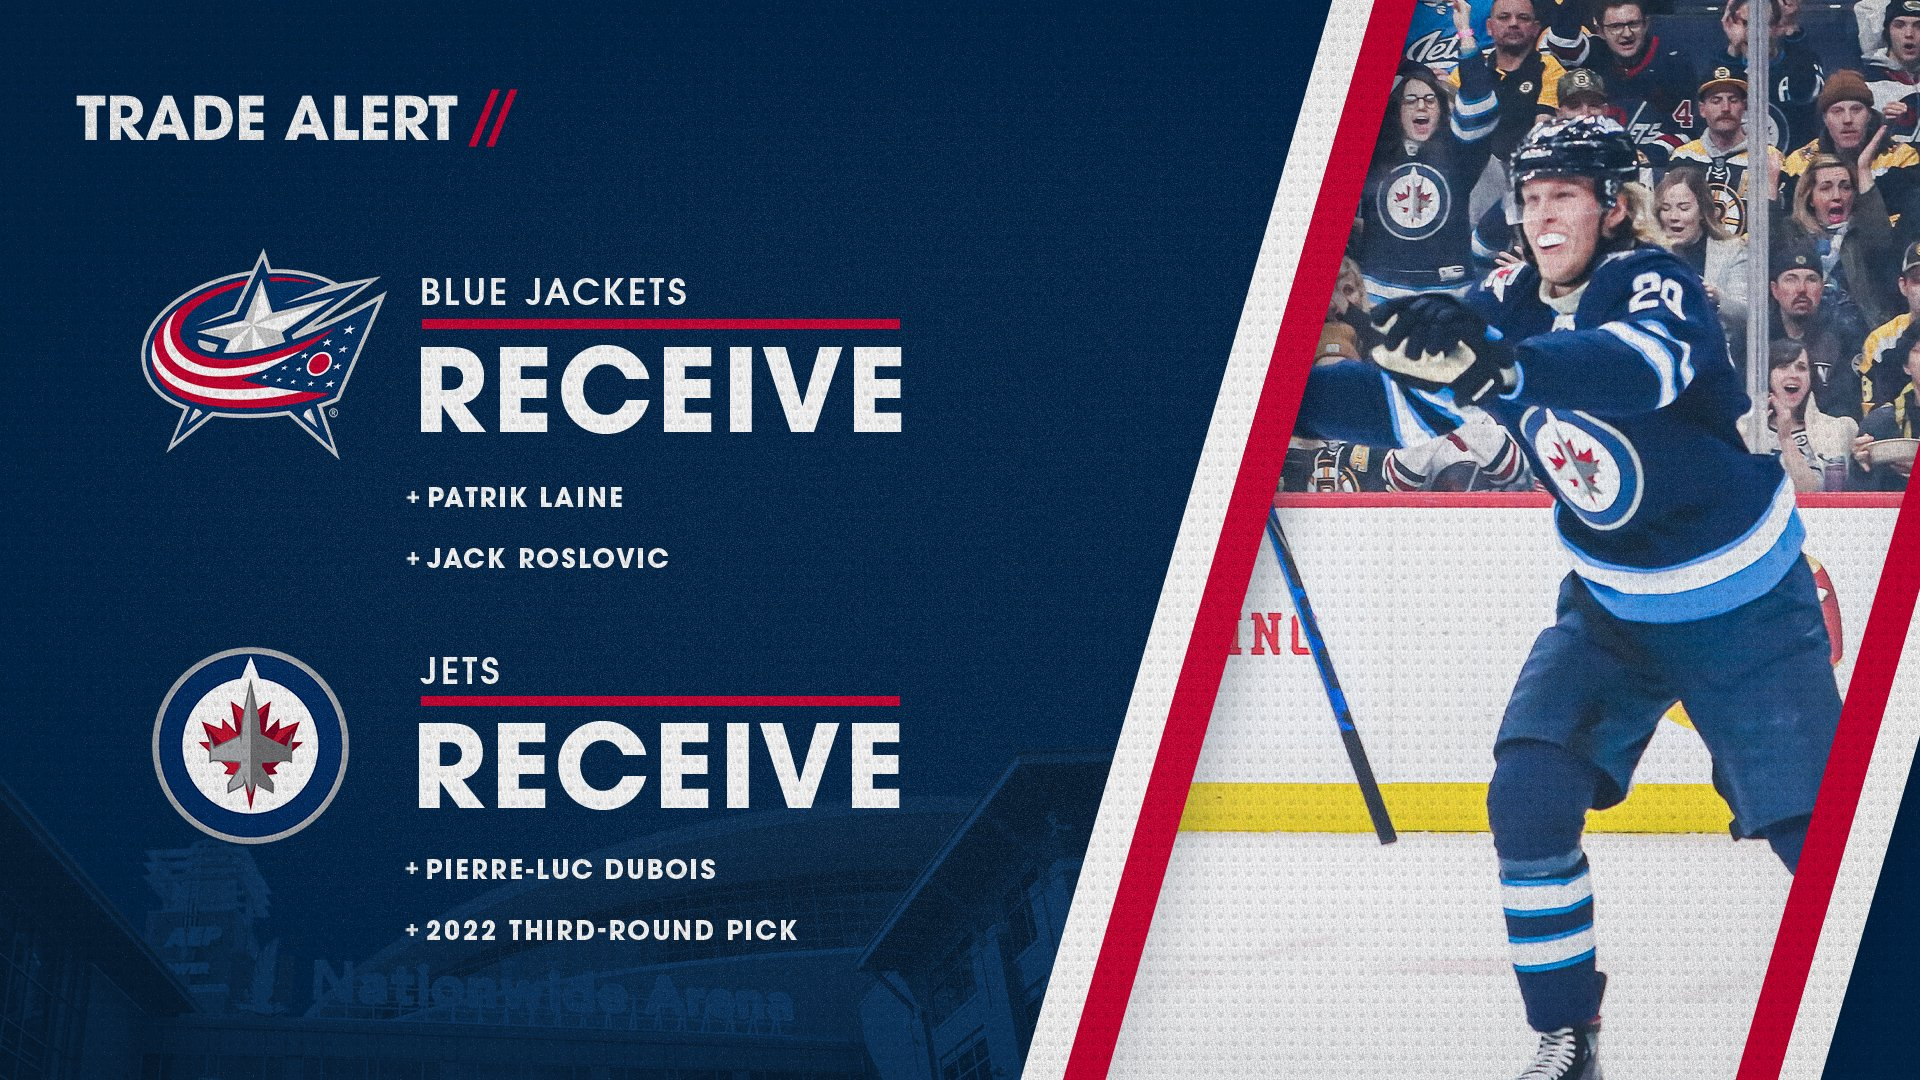 """Columbus Blue Jackets on Twitter: """"IT'S OFFICIAL! All-Star Patrik Laine and  Columbus' own Jack Roslovic are coming to town! See how the full trade  shakes up ⬇️… https://t.co/Qc7gGCeod6"""""""